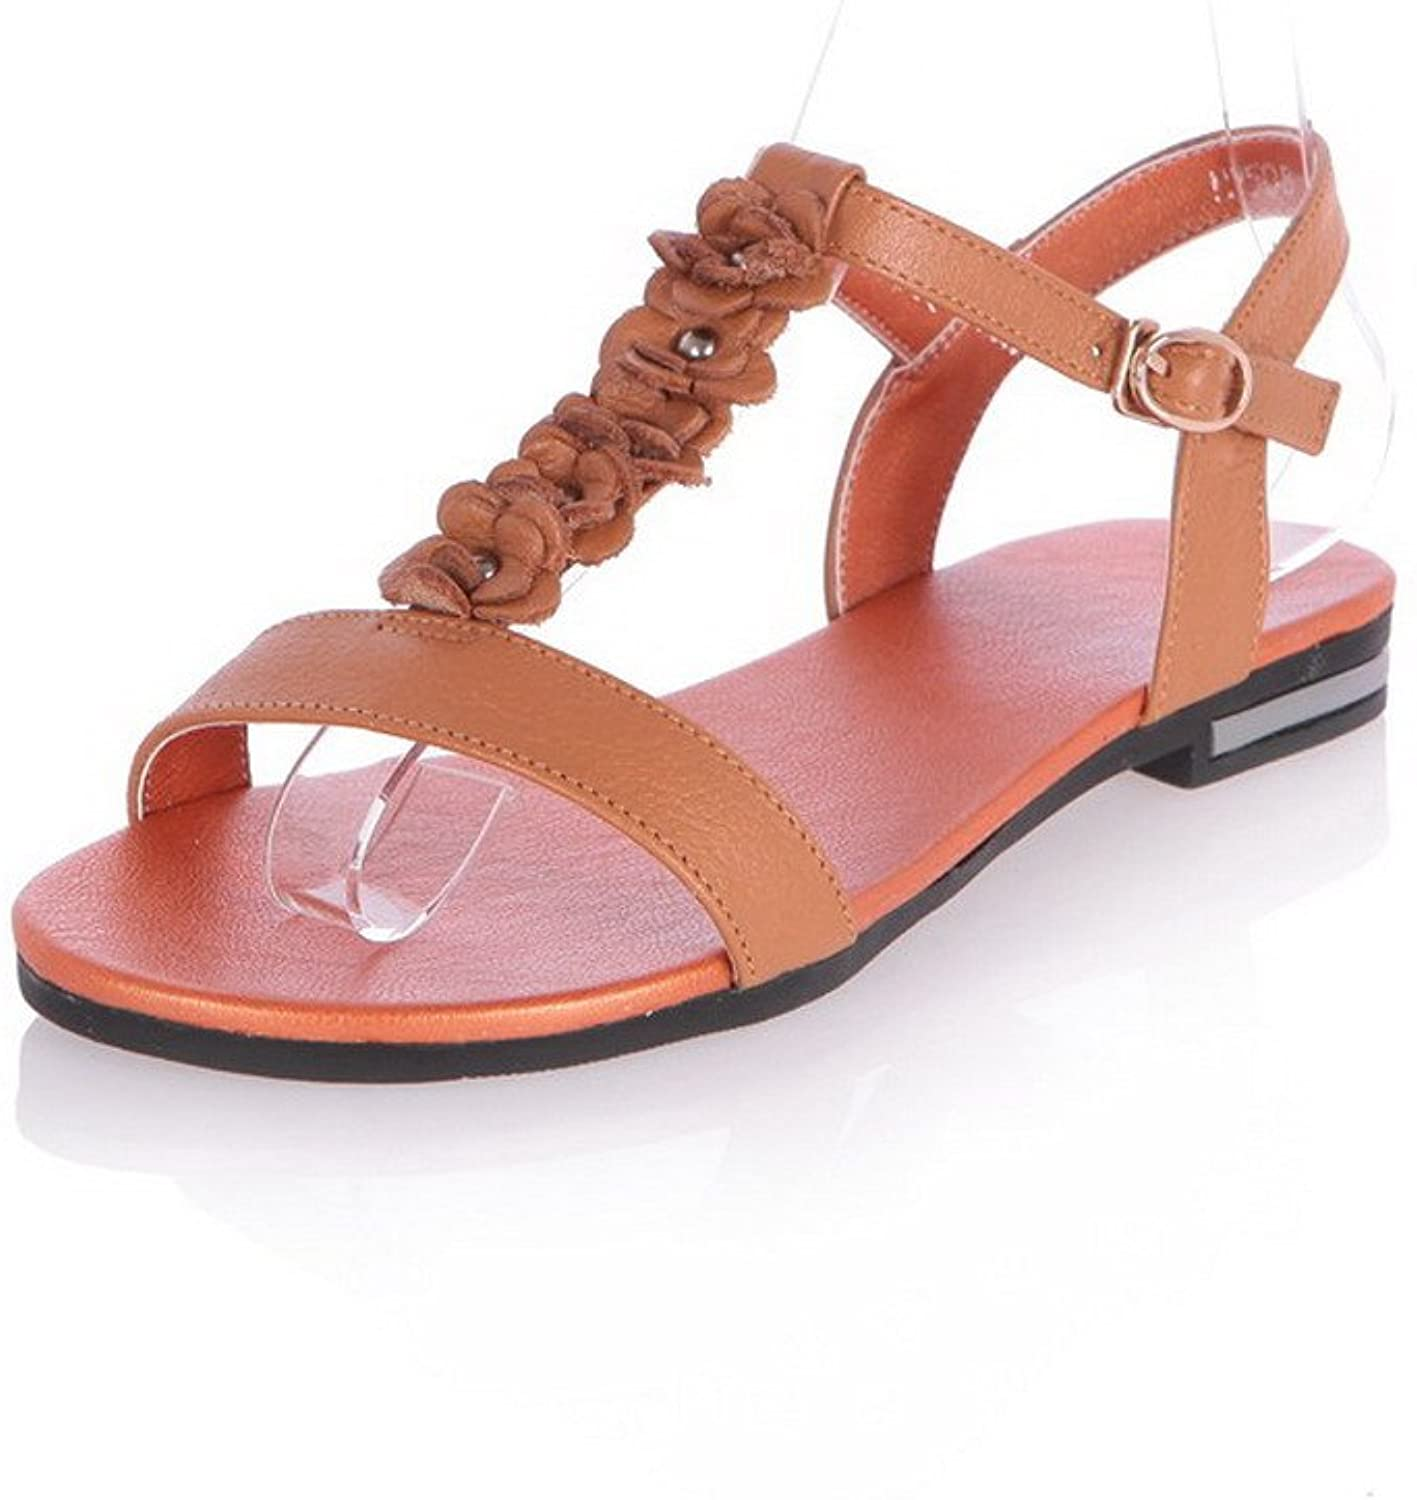 WeenFashion Women's Buckle Open Toe Low-Heels Cow Leather Sandals